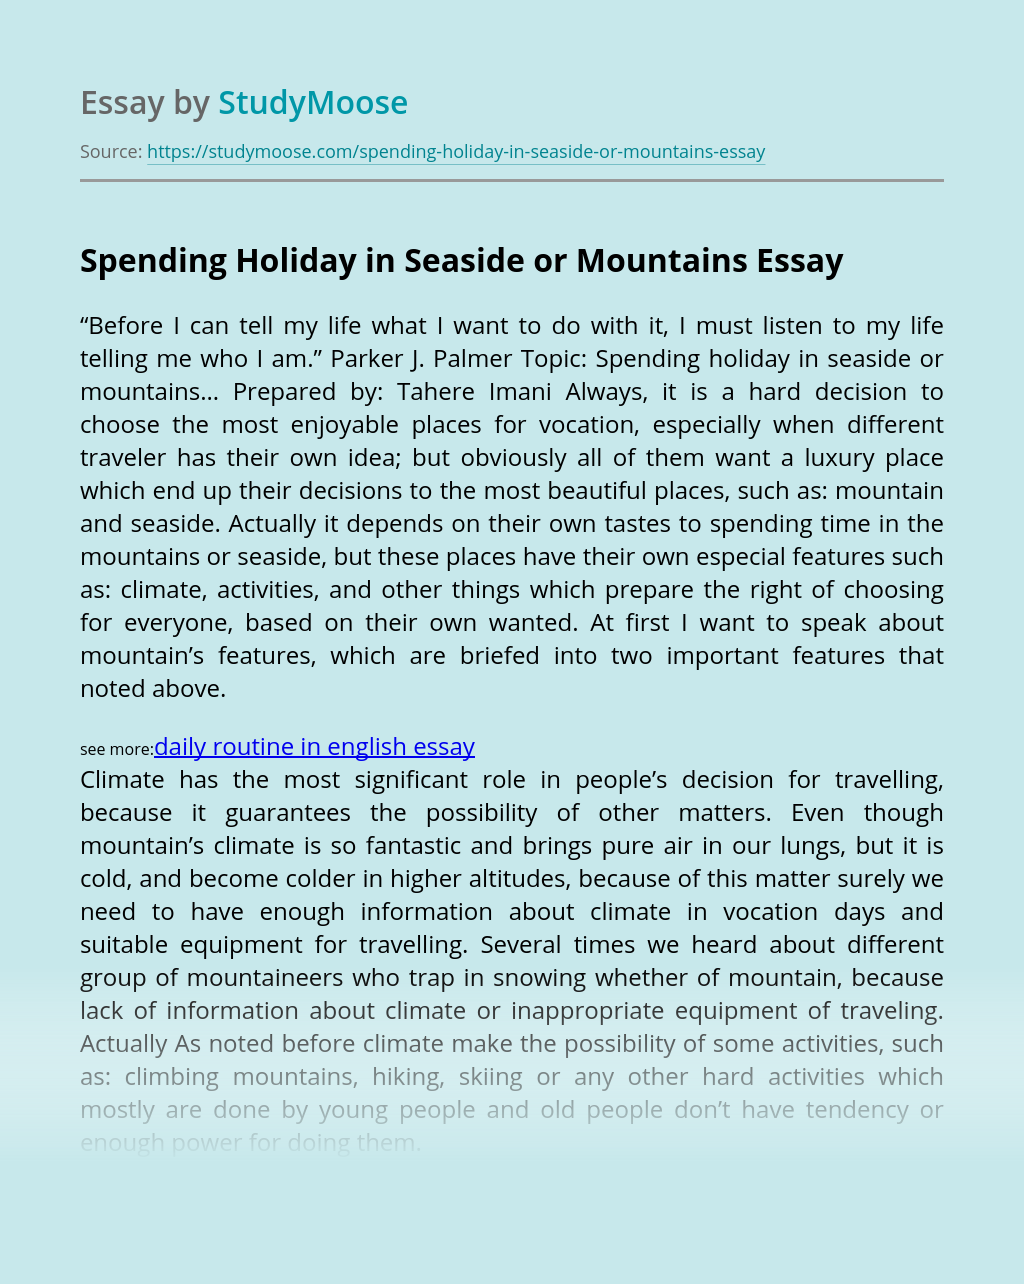 Spending Holiday in Seaside or Mountains